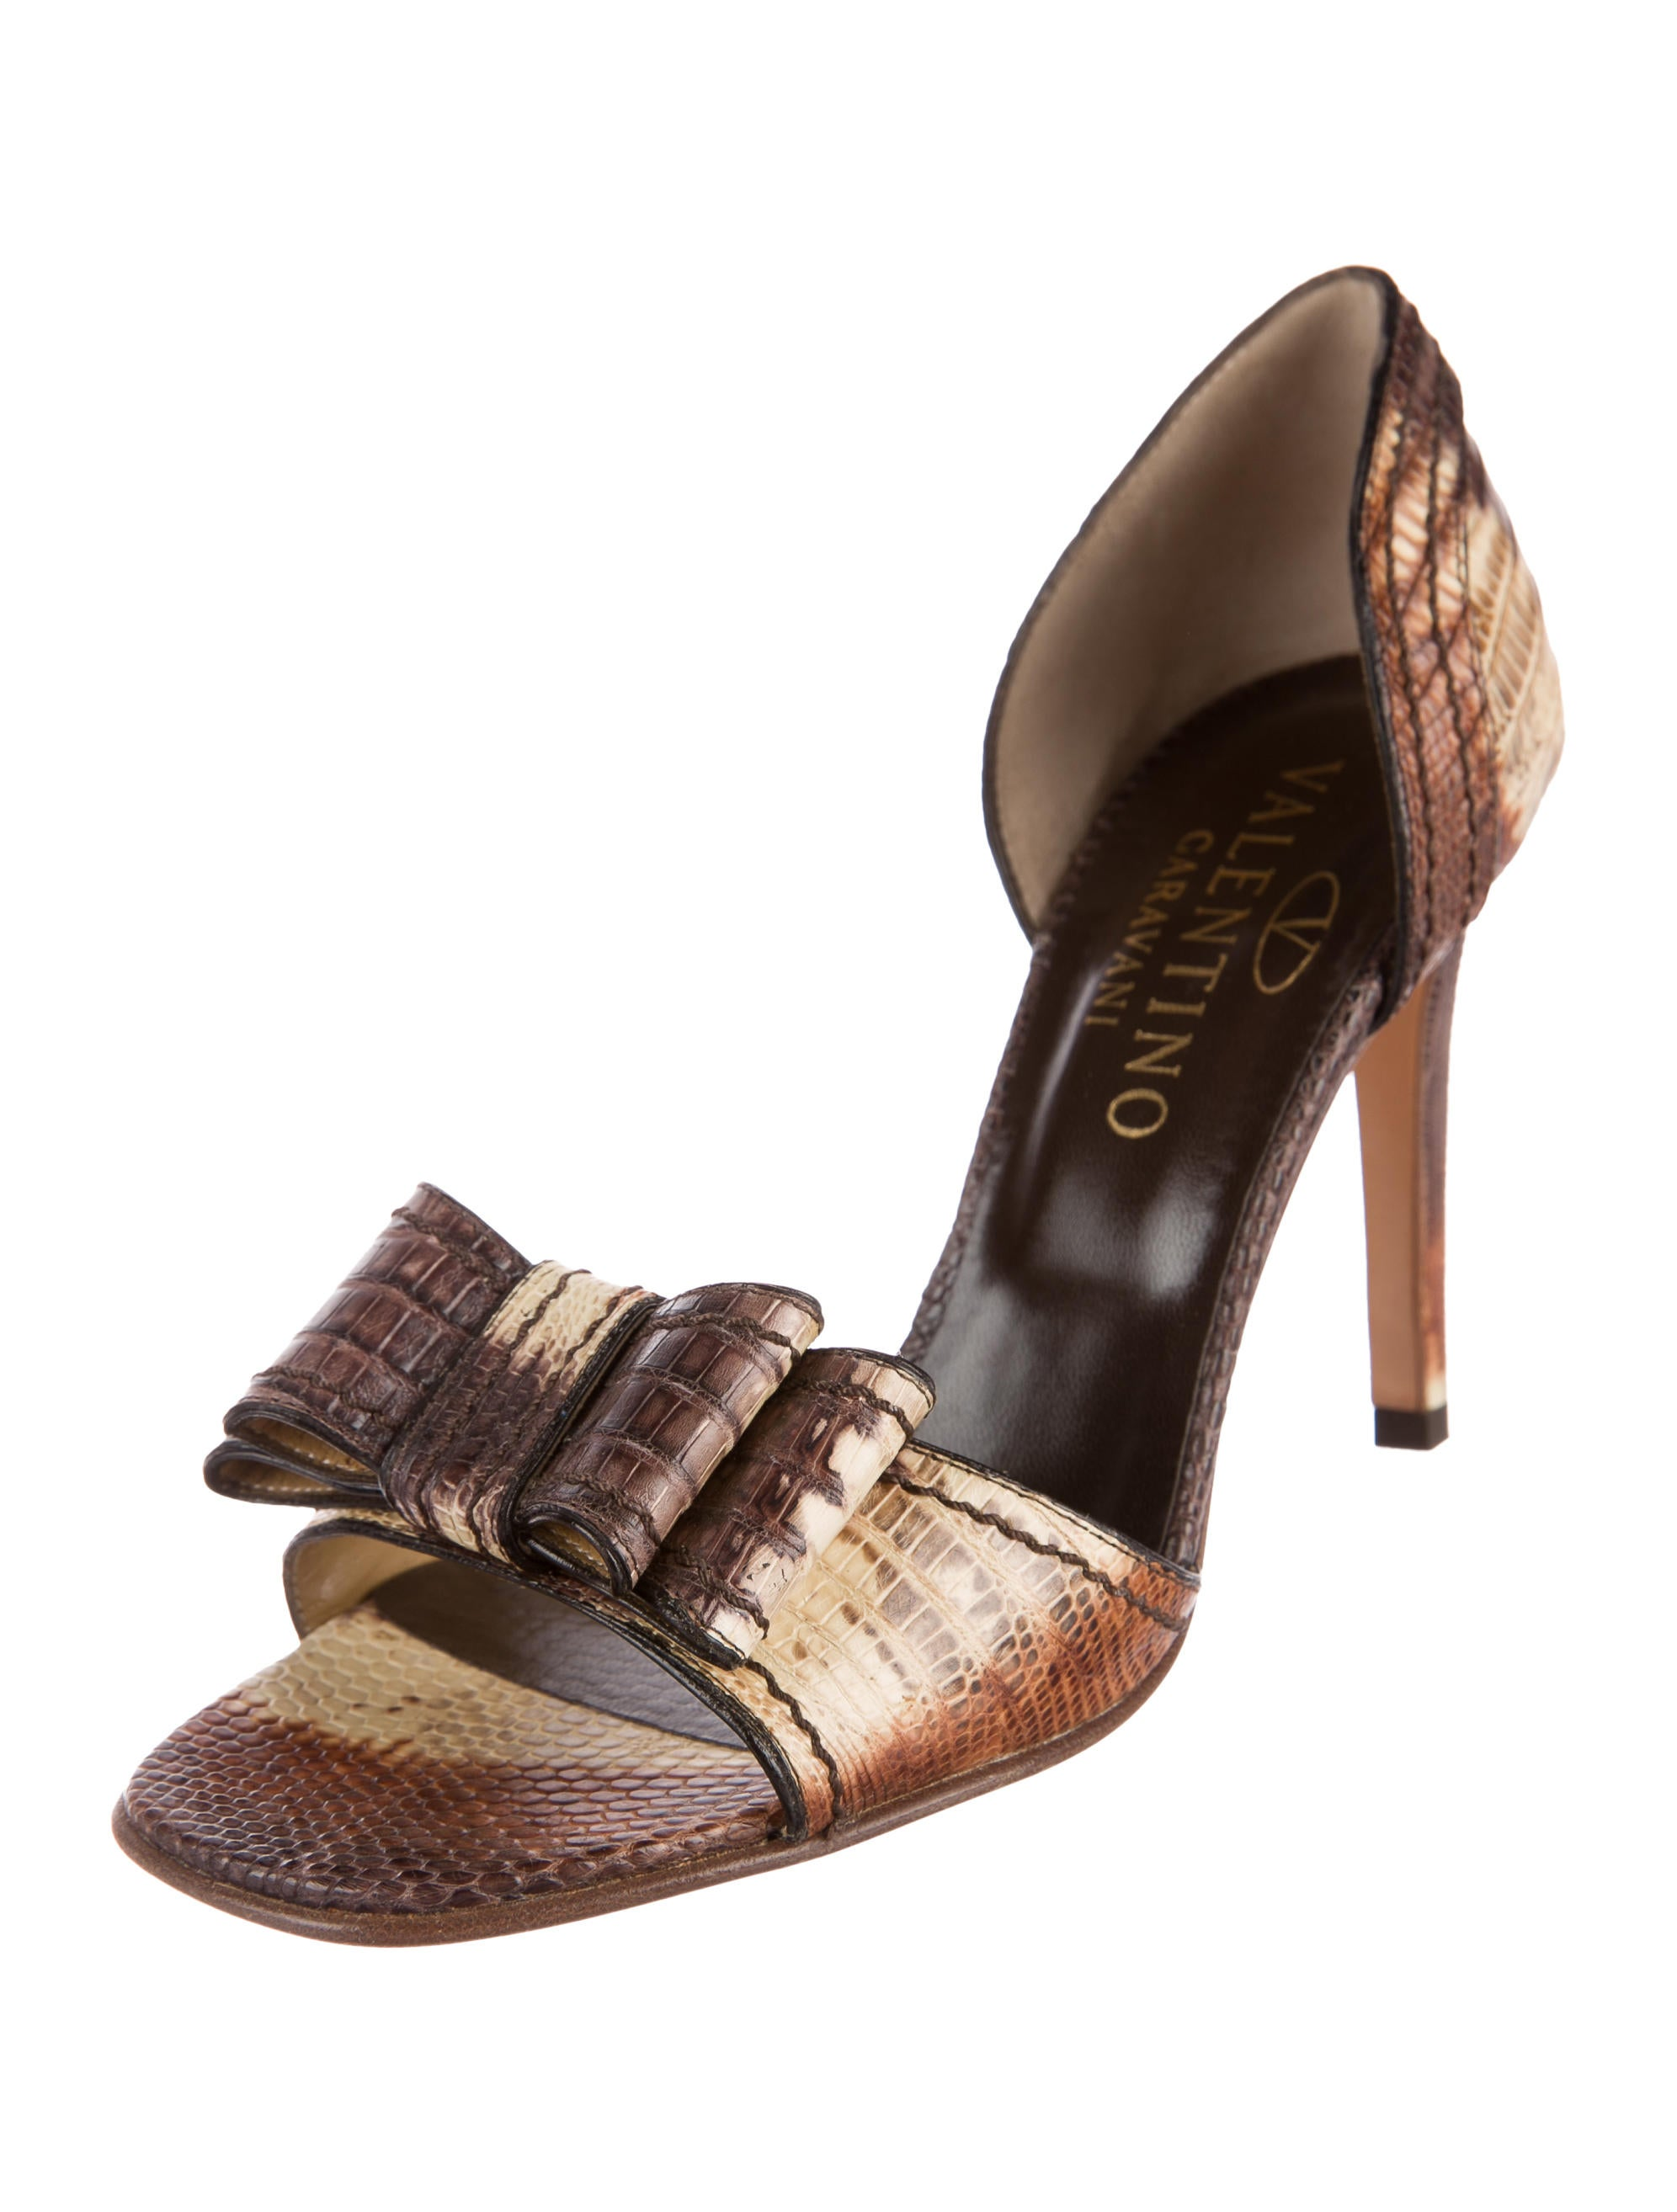 from china online Valentino Lizard Bow-Accented Sandals original cheap online clearance store cheap price cheap sale get authentic outlet manchester great sale WJ7Z2rRR